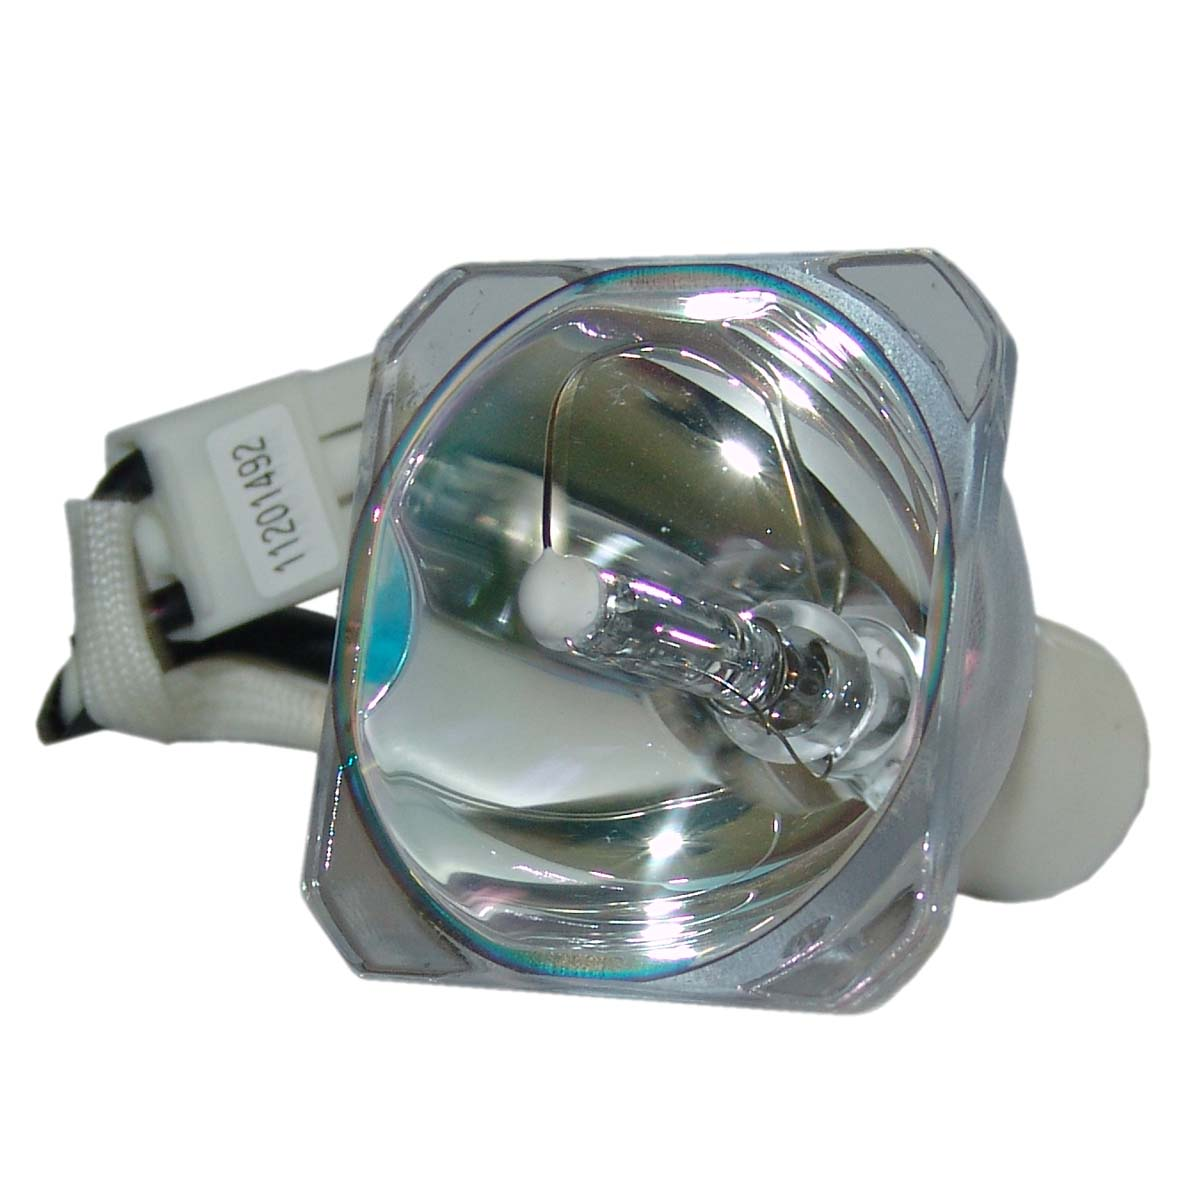 SHP137 5811116310-S for Vivitek D535 D530 D536-3D D537 D537W Projector Bulb Lamp without housing free shipping 5811116310 s original projector bare lamp for vivitek d536 3d d538w 3d d522wt